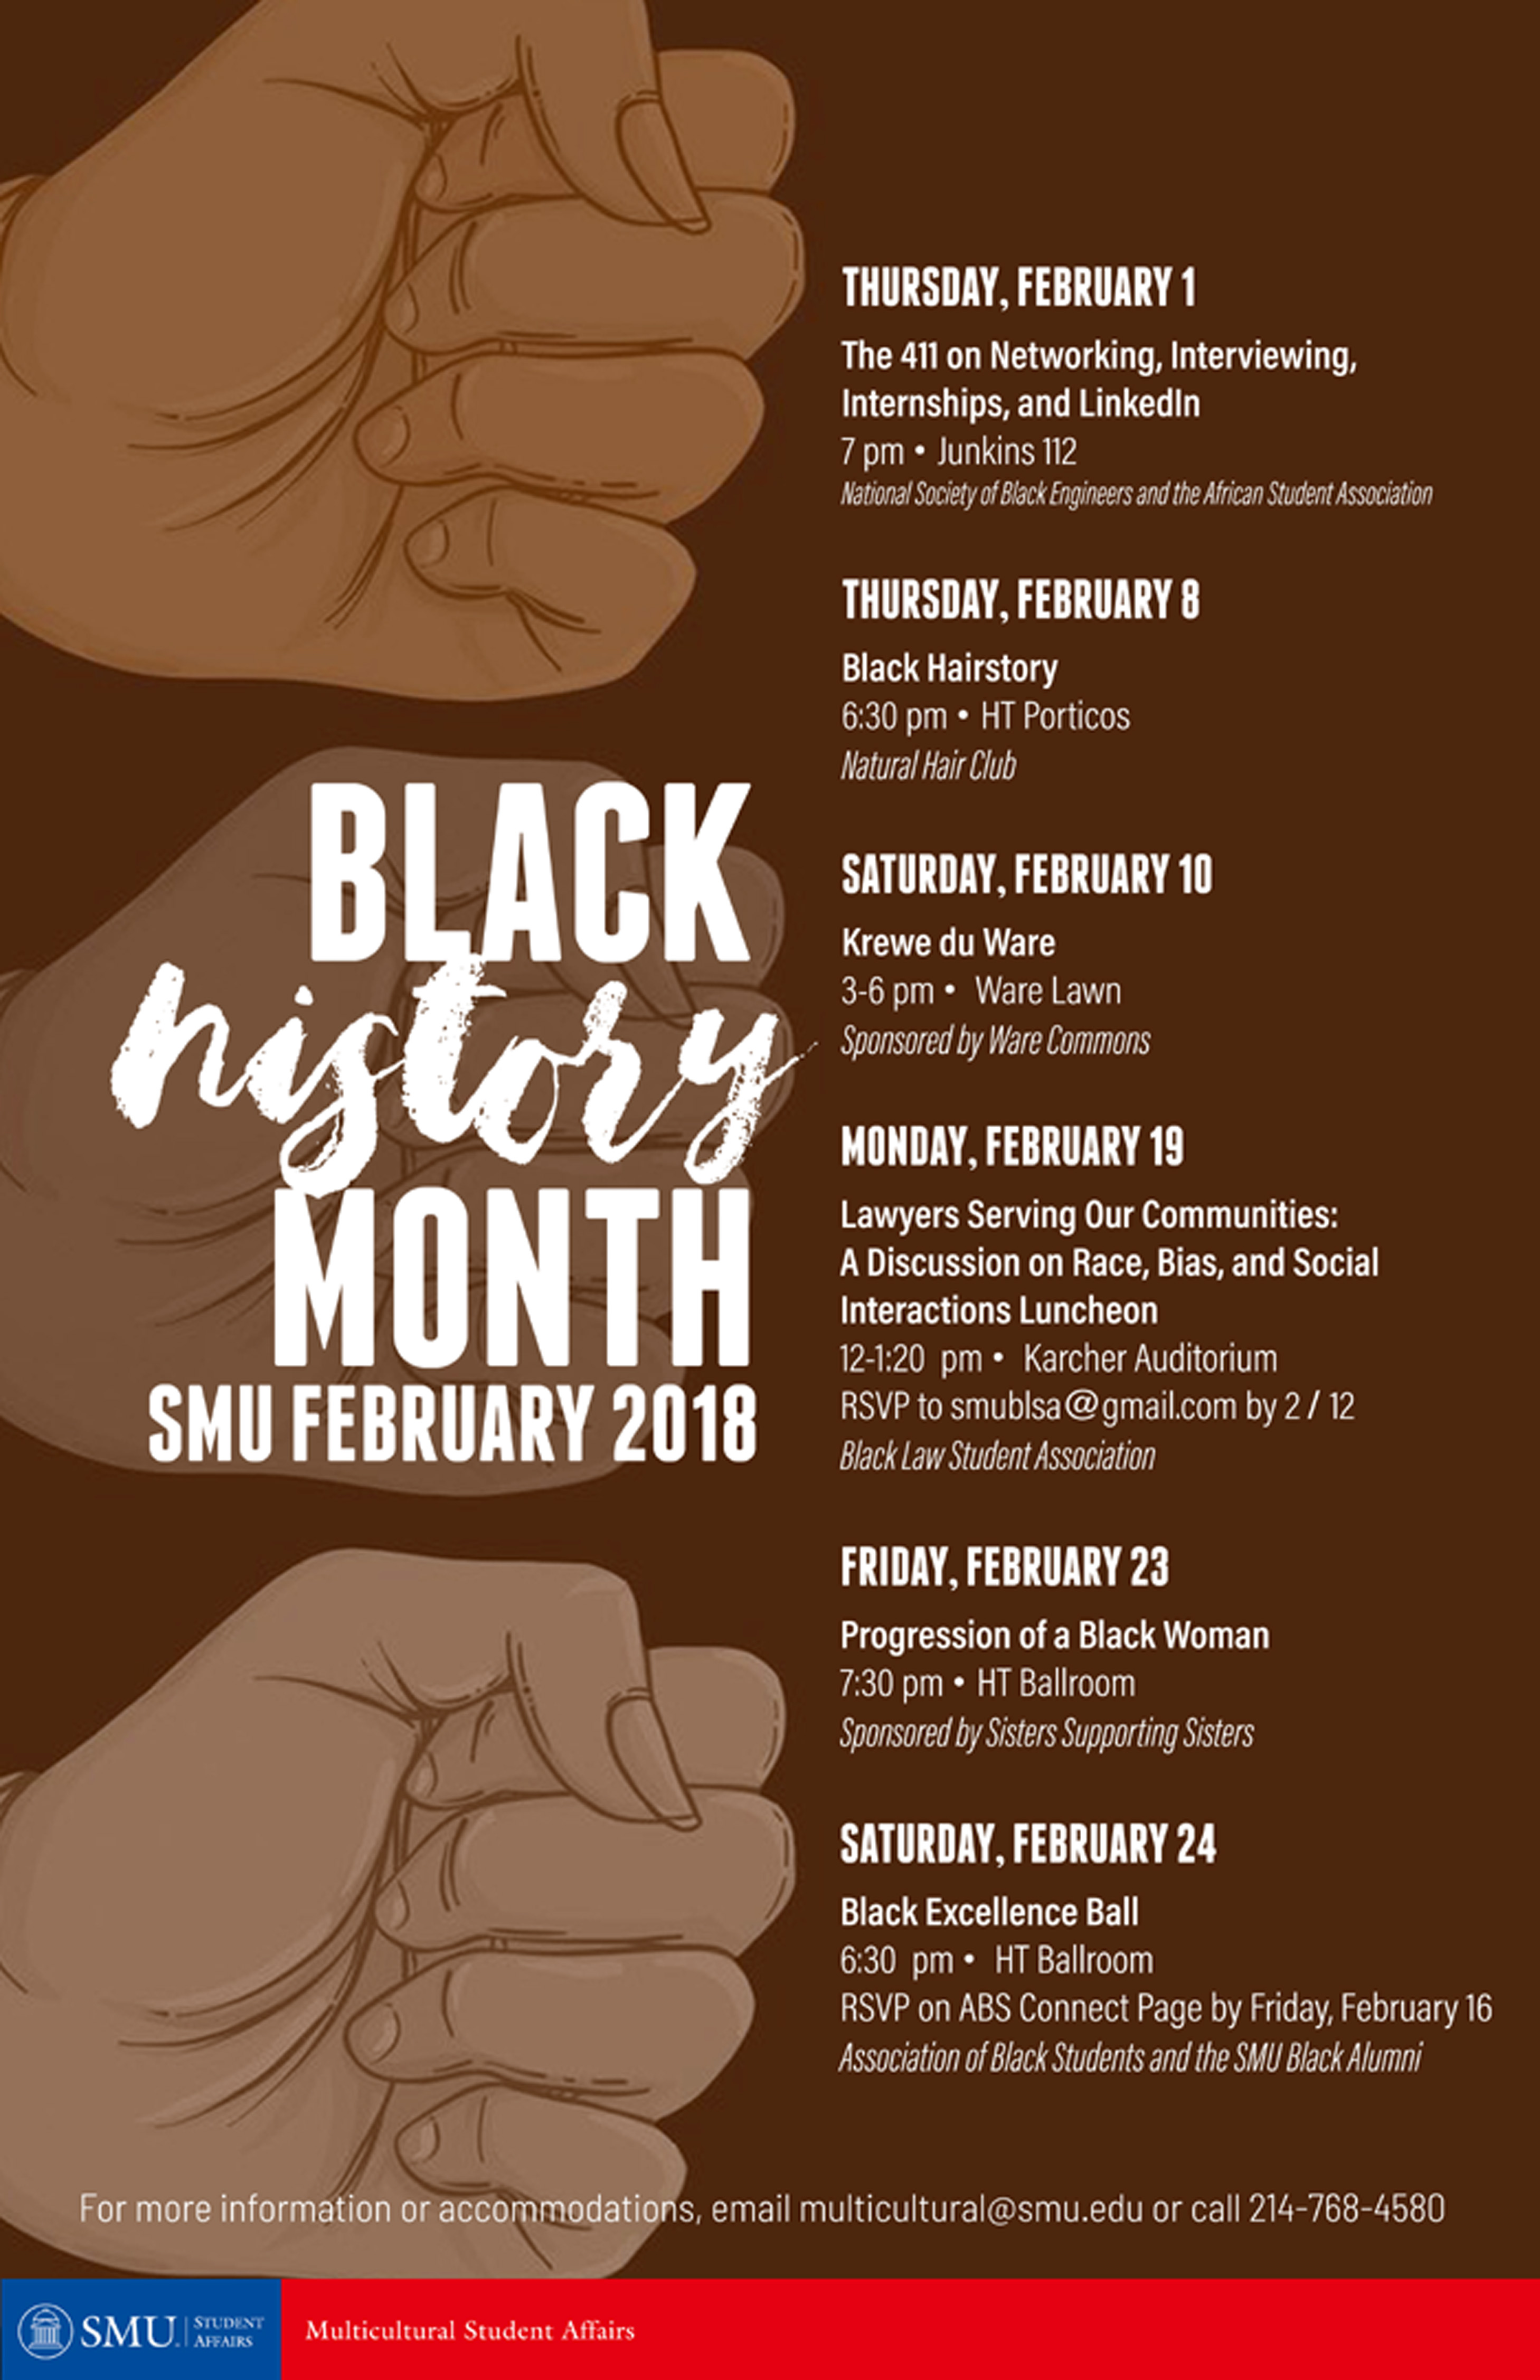 Black History Month at SMU